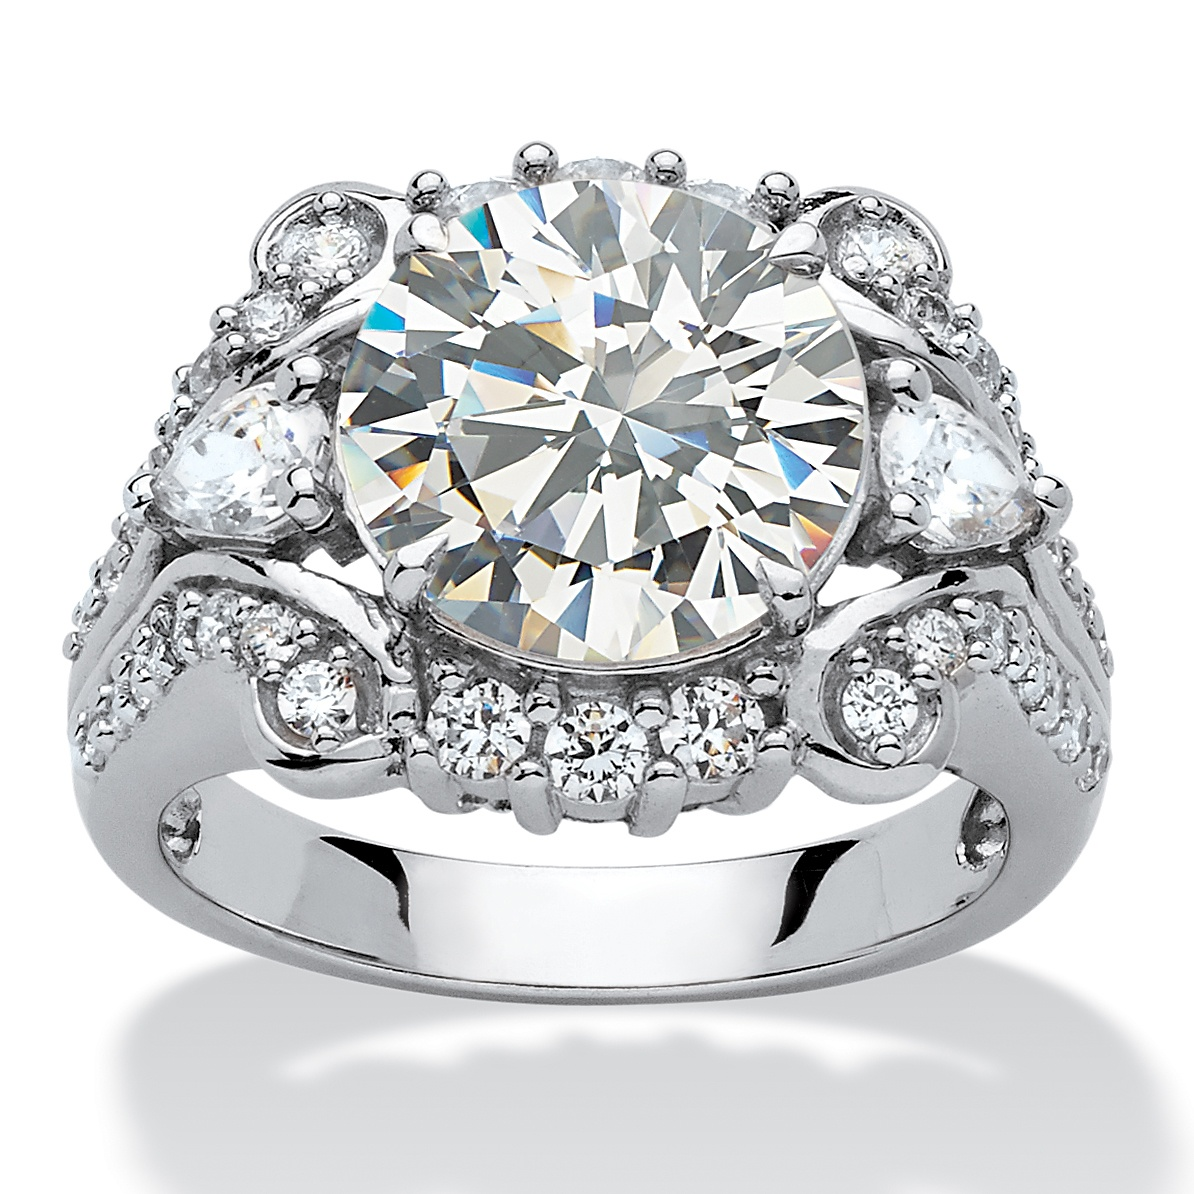 4.88 TCW Round Cubic Zirconia Platinum over Sterling Silver Engagement Anniversary Ring - Size 8